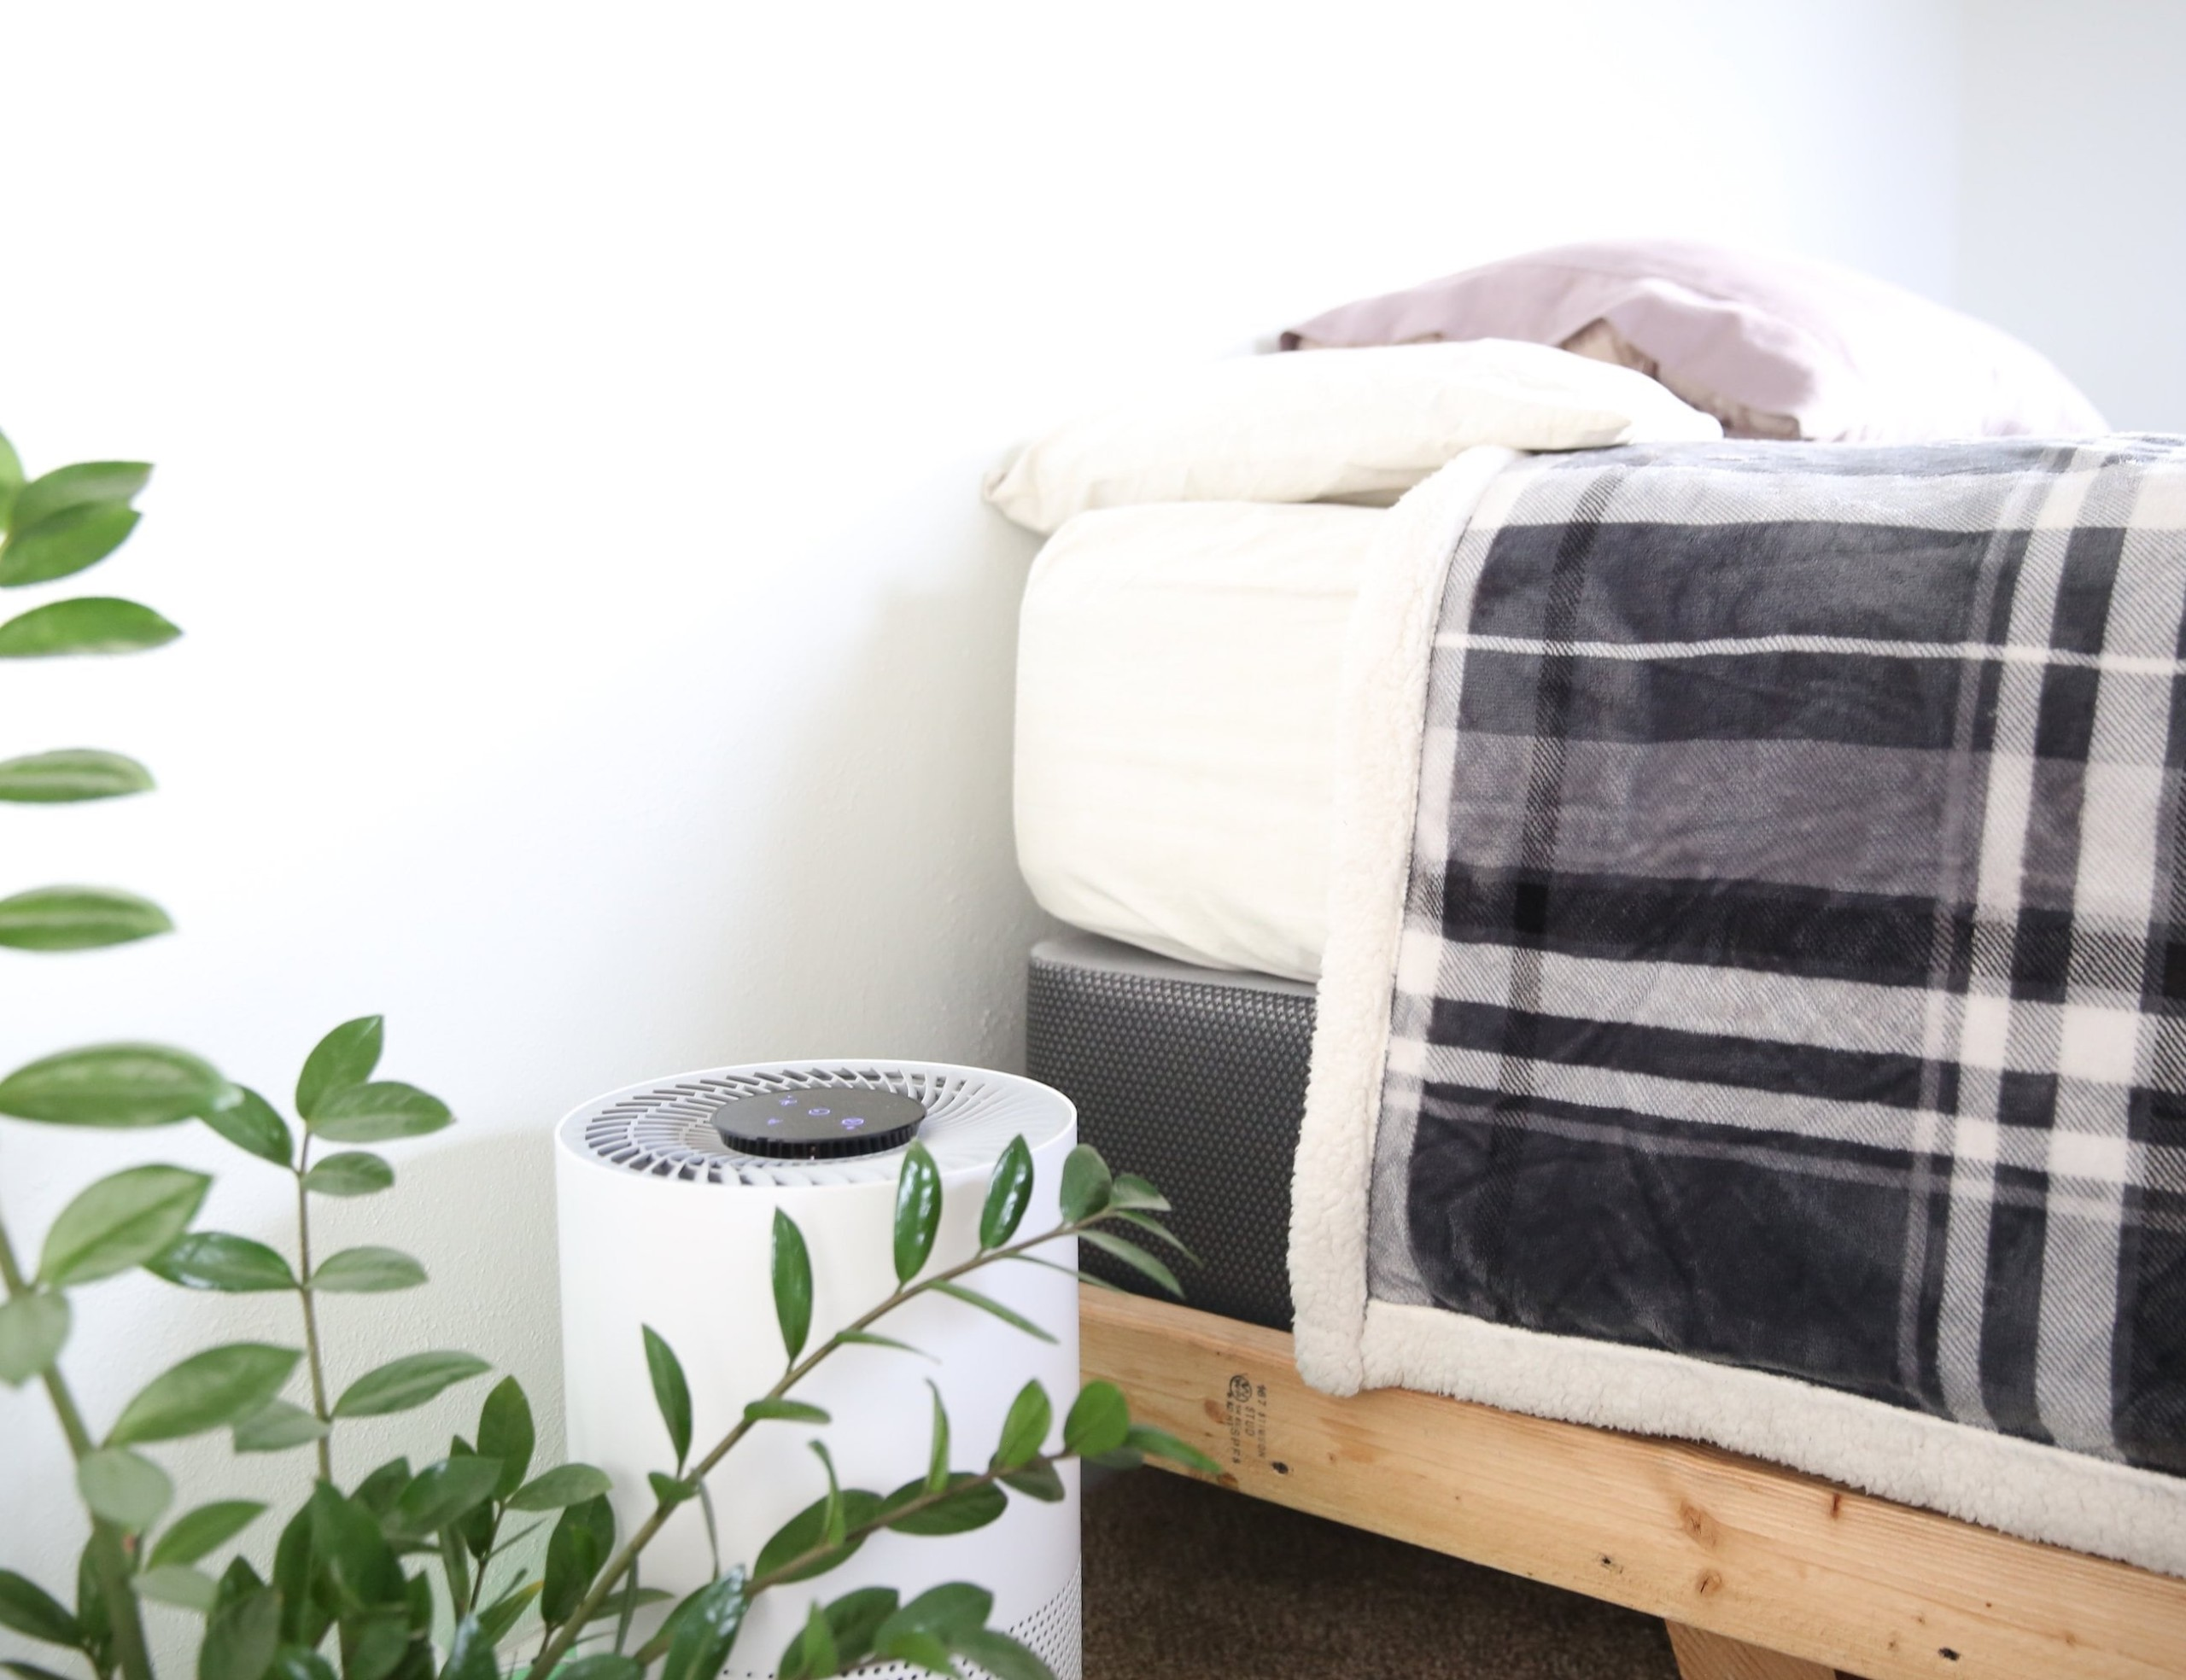 MA-Smart Three-Filter Air Purifier automatically cleans the air around you